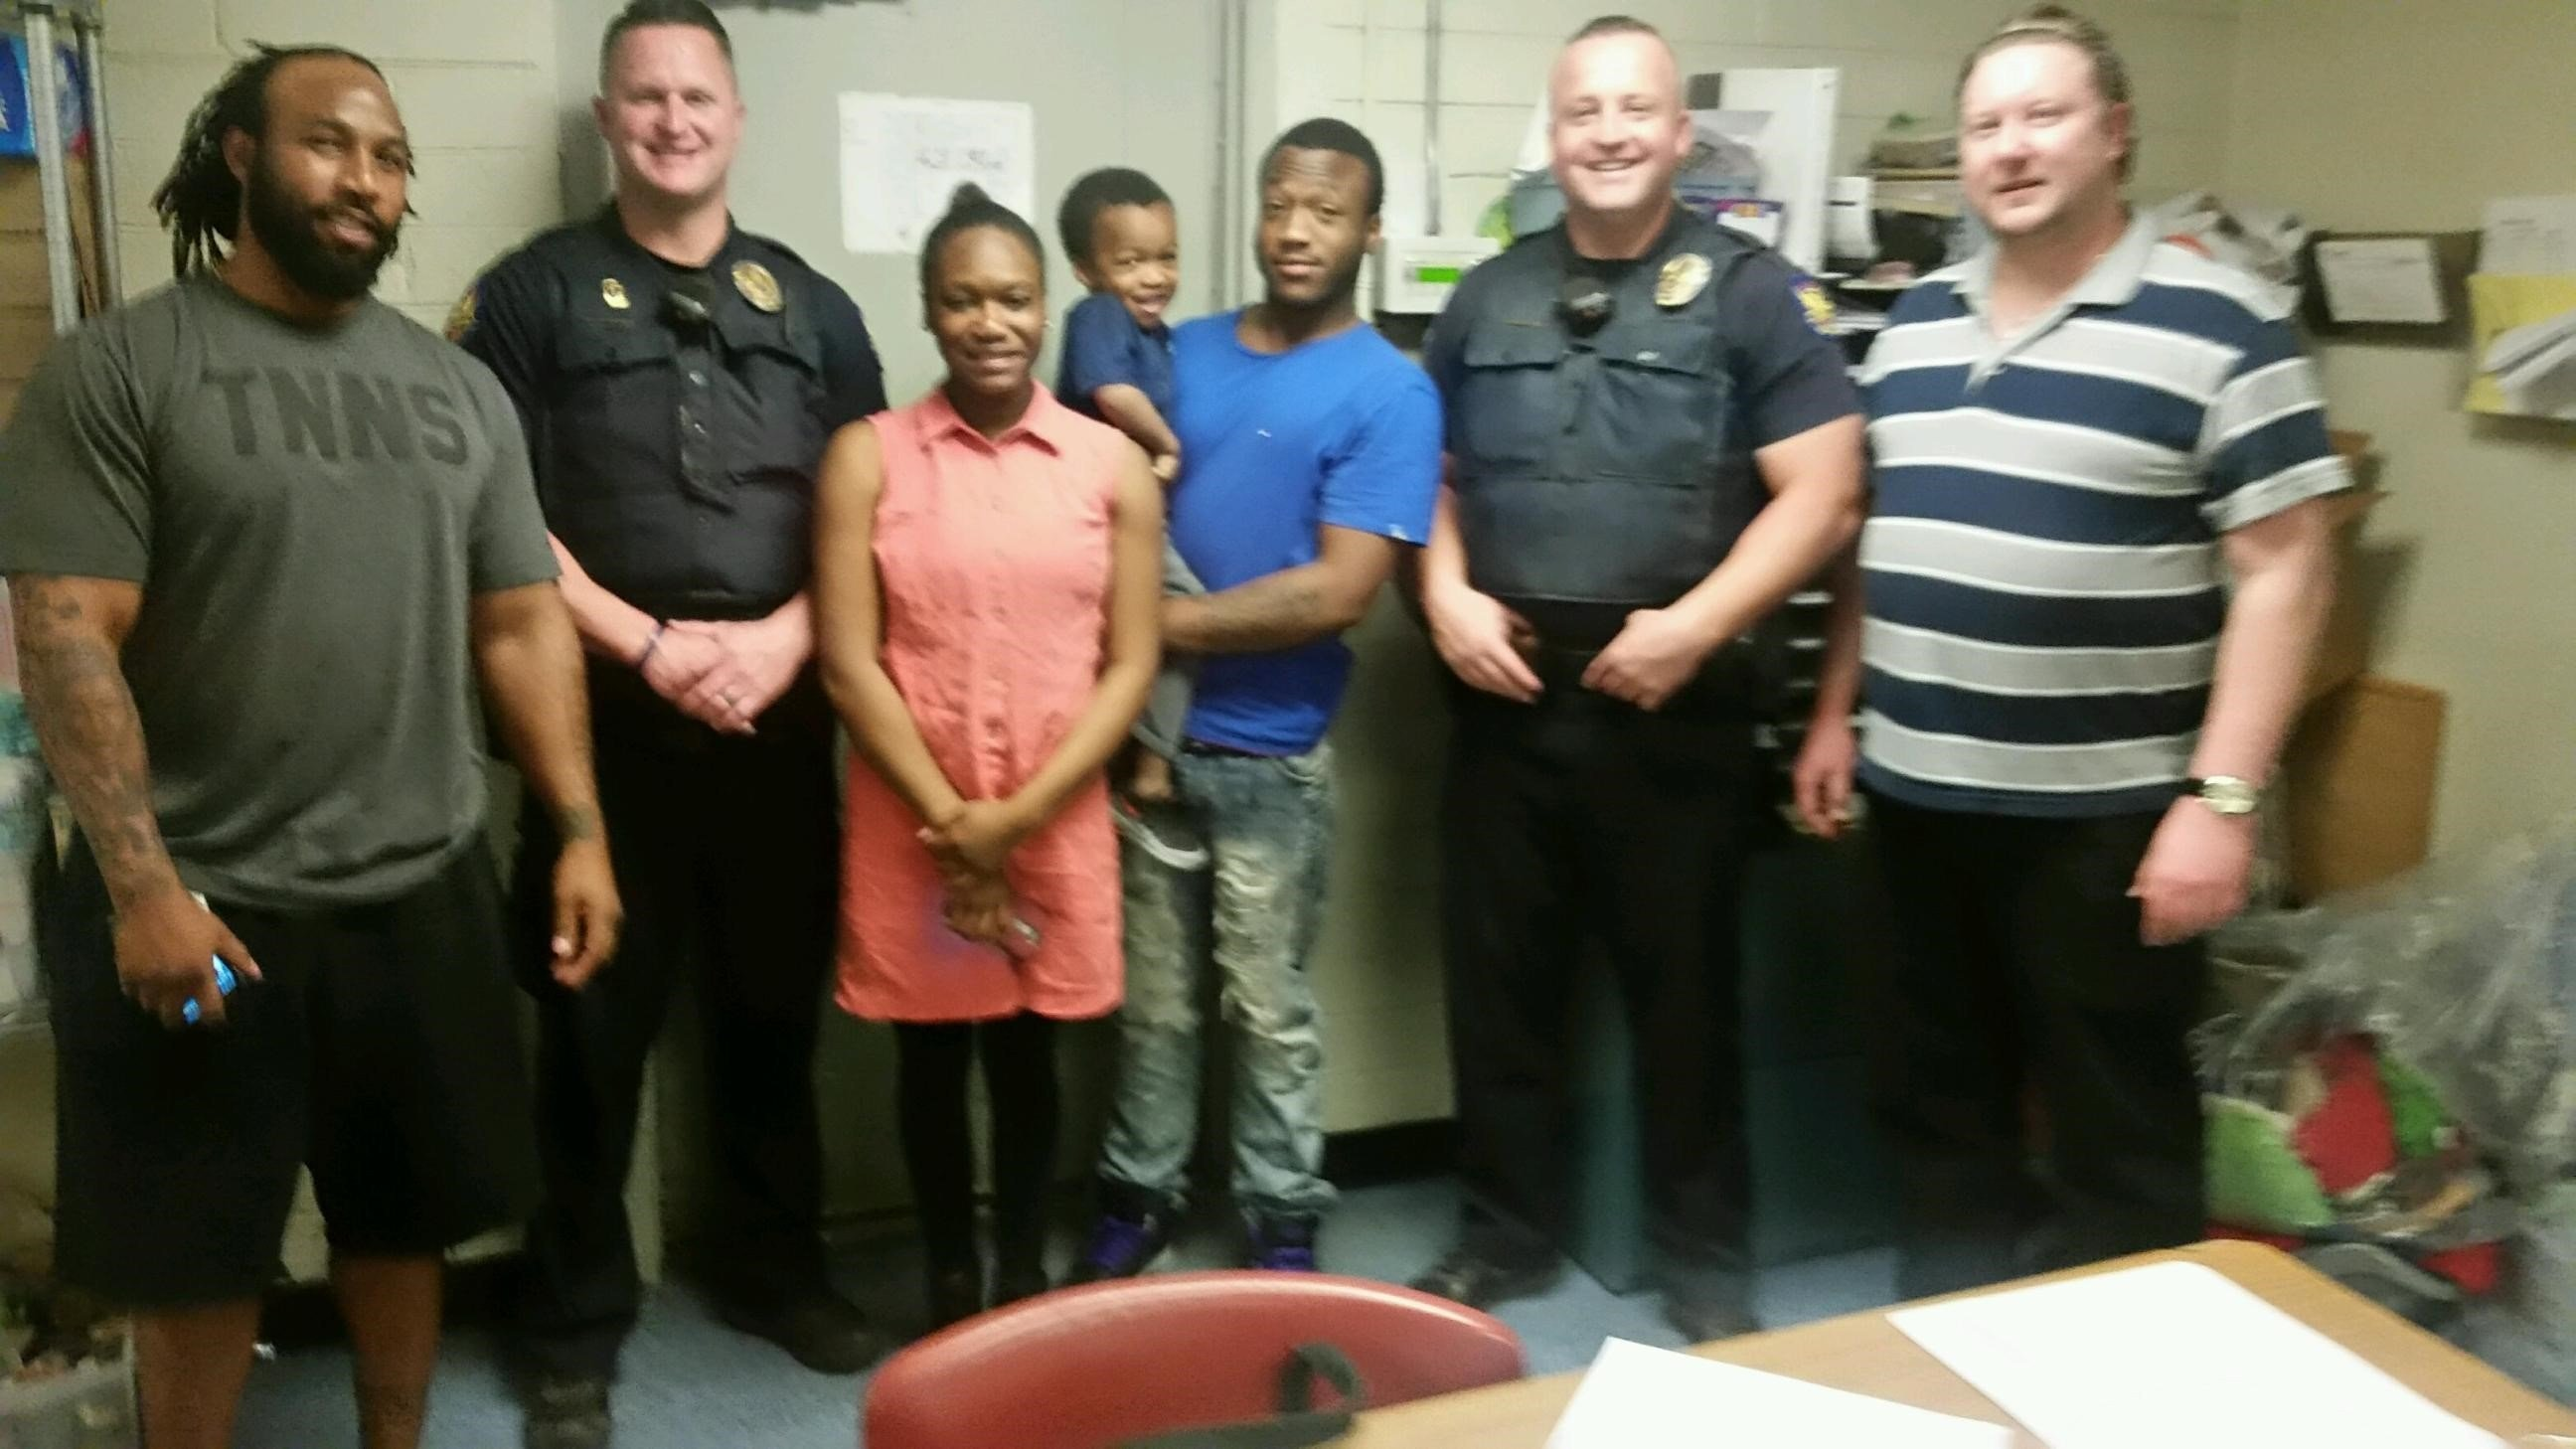 Officers Brian Wood and Josh Roper with the family at the Phoenix police station. (Source: Phoenix Police Department)